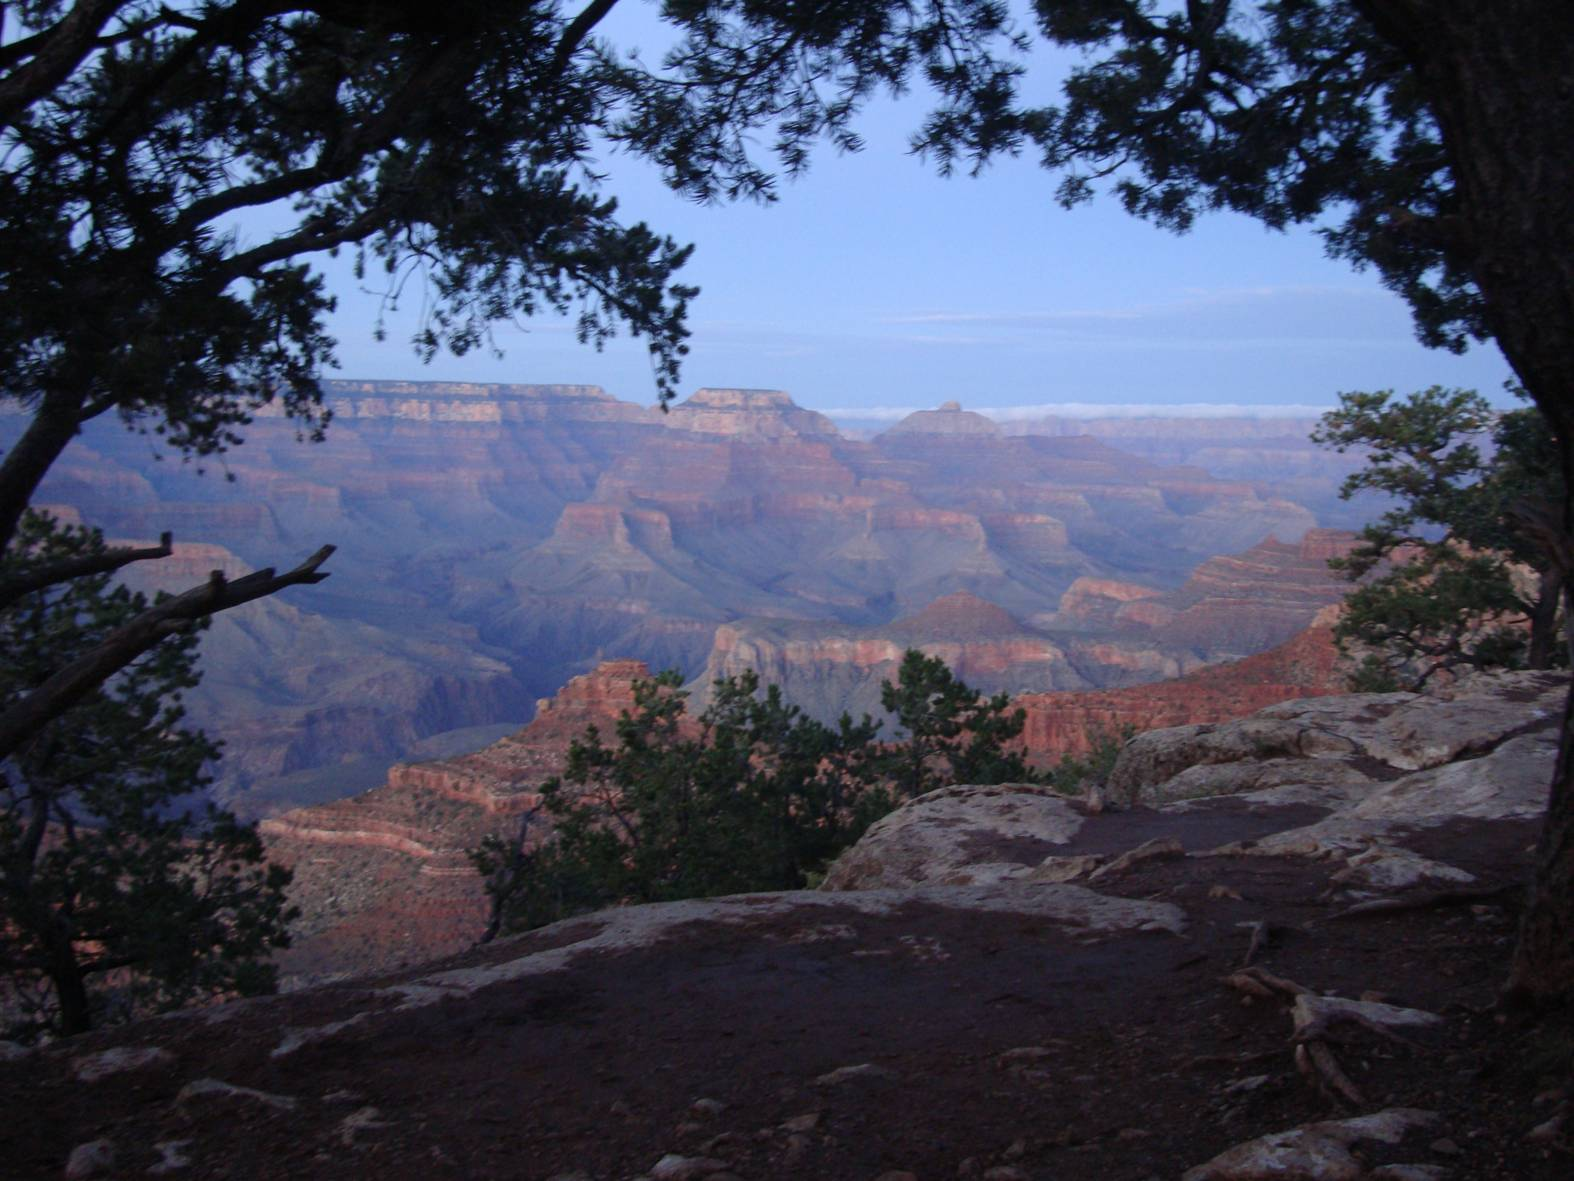 Picture: The Grand Canyon living up to its name.